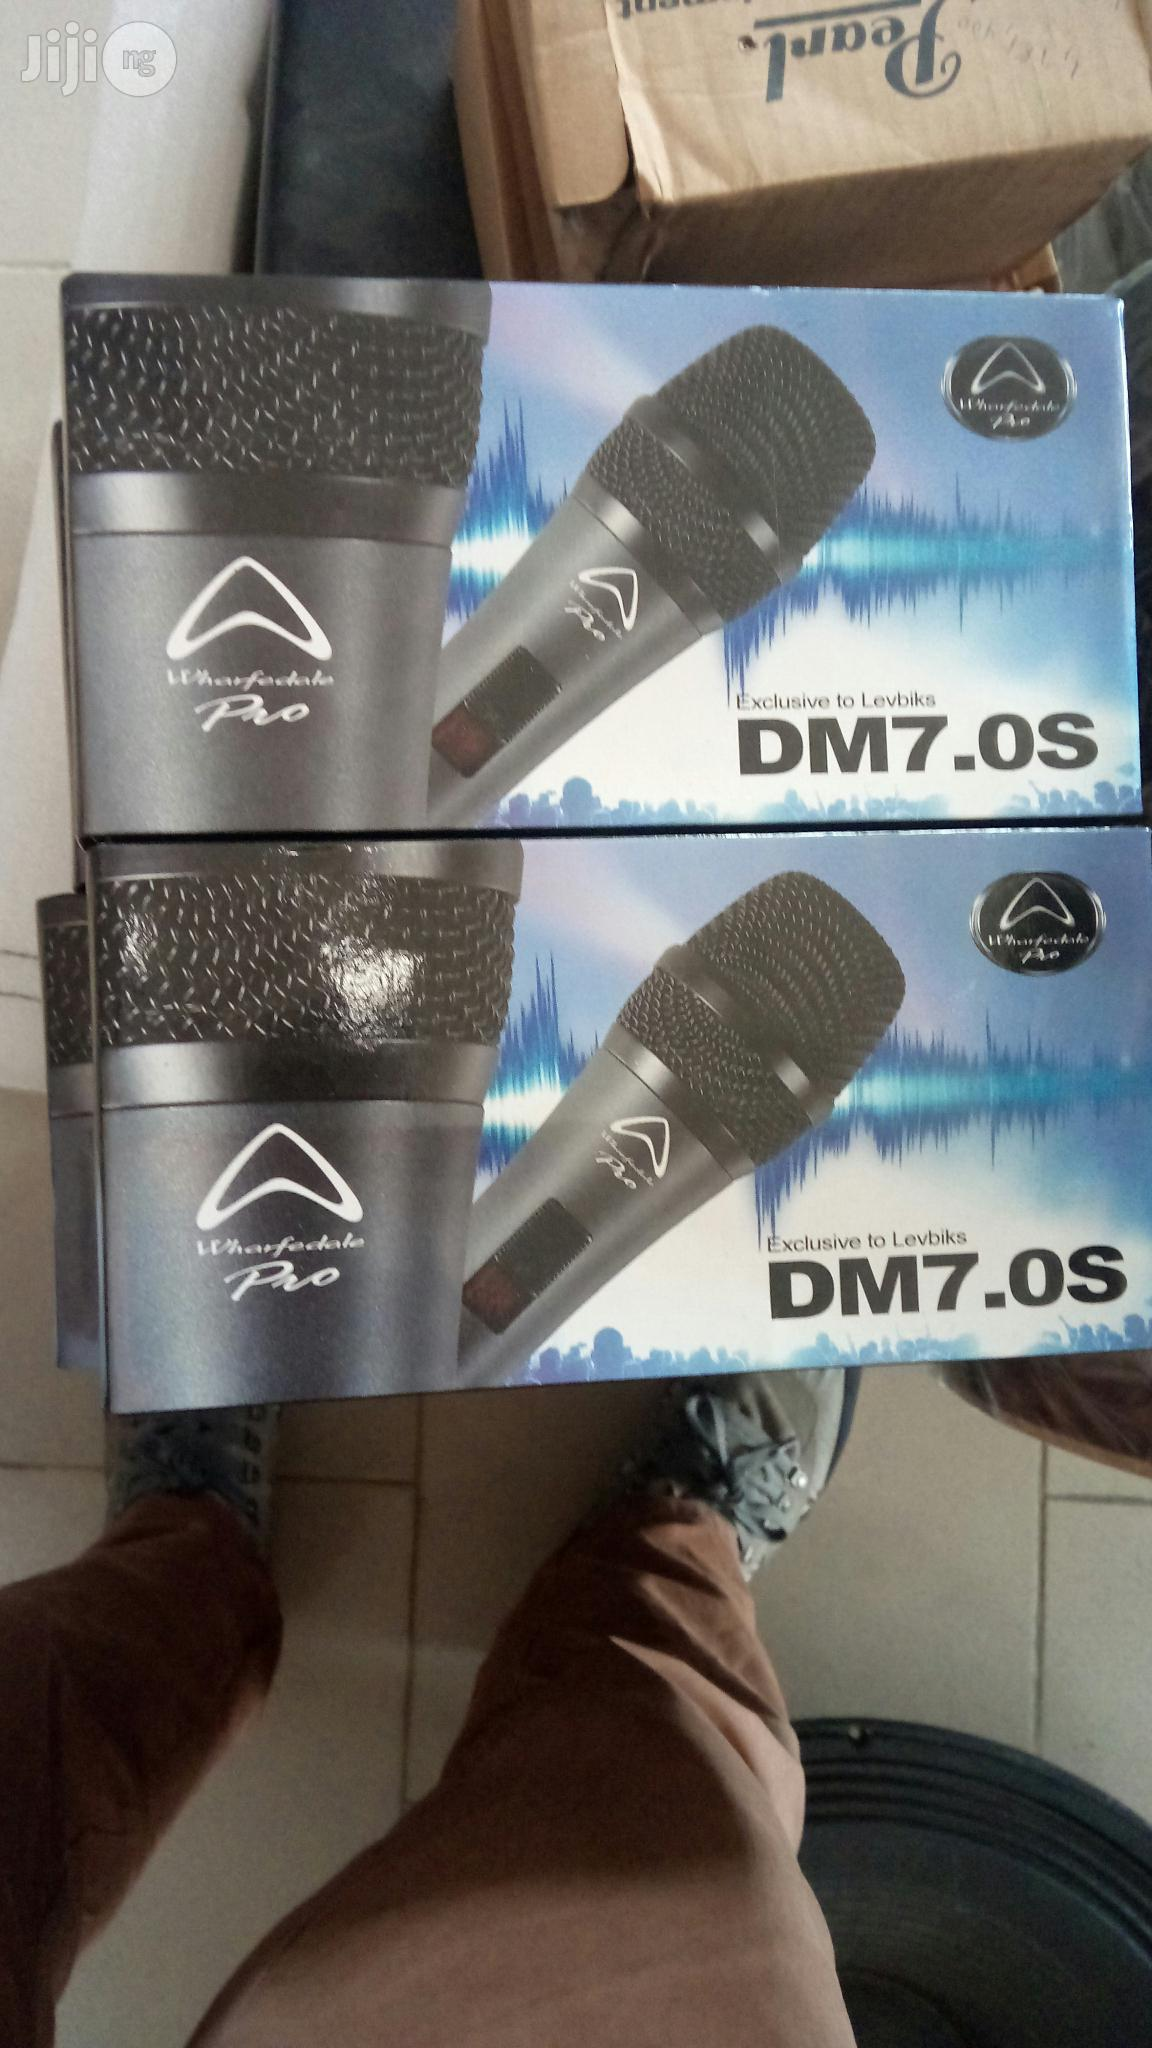 Wharfedale Pro Live Wired Dynamic Microphone DM7.0S